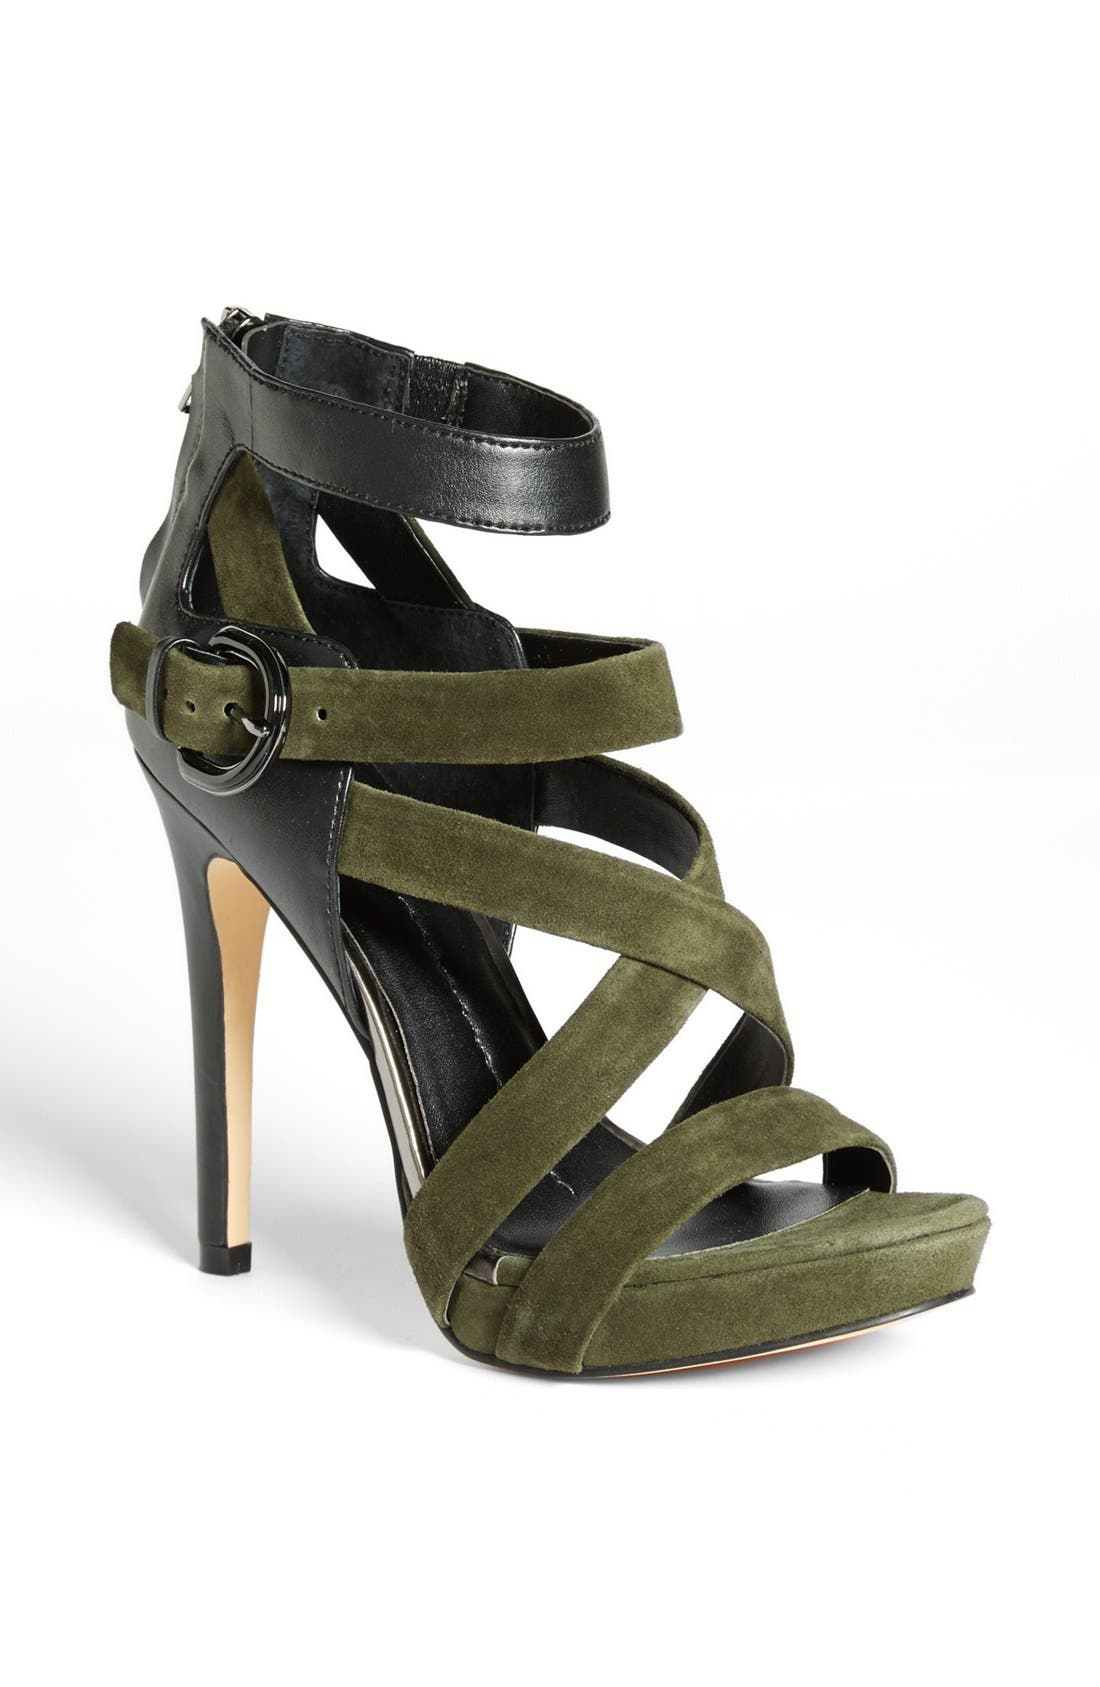 Alternate Image 1 Selected - DV by Dolce Vita 'Scotlyn' Leather & Suede Sandal